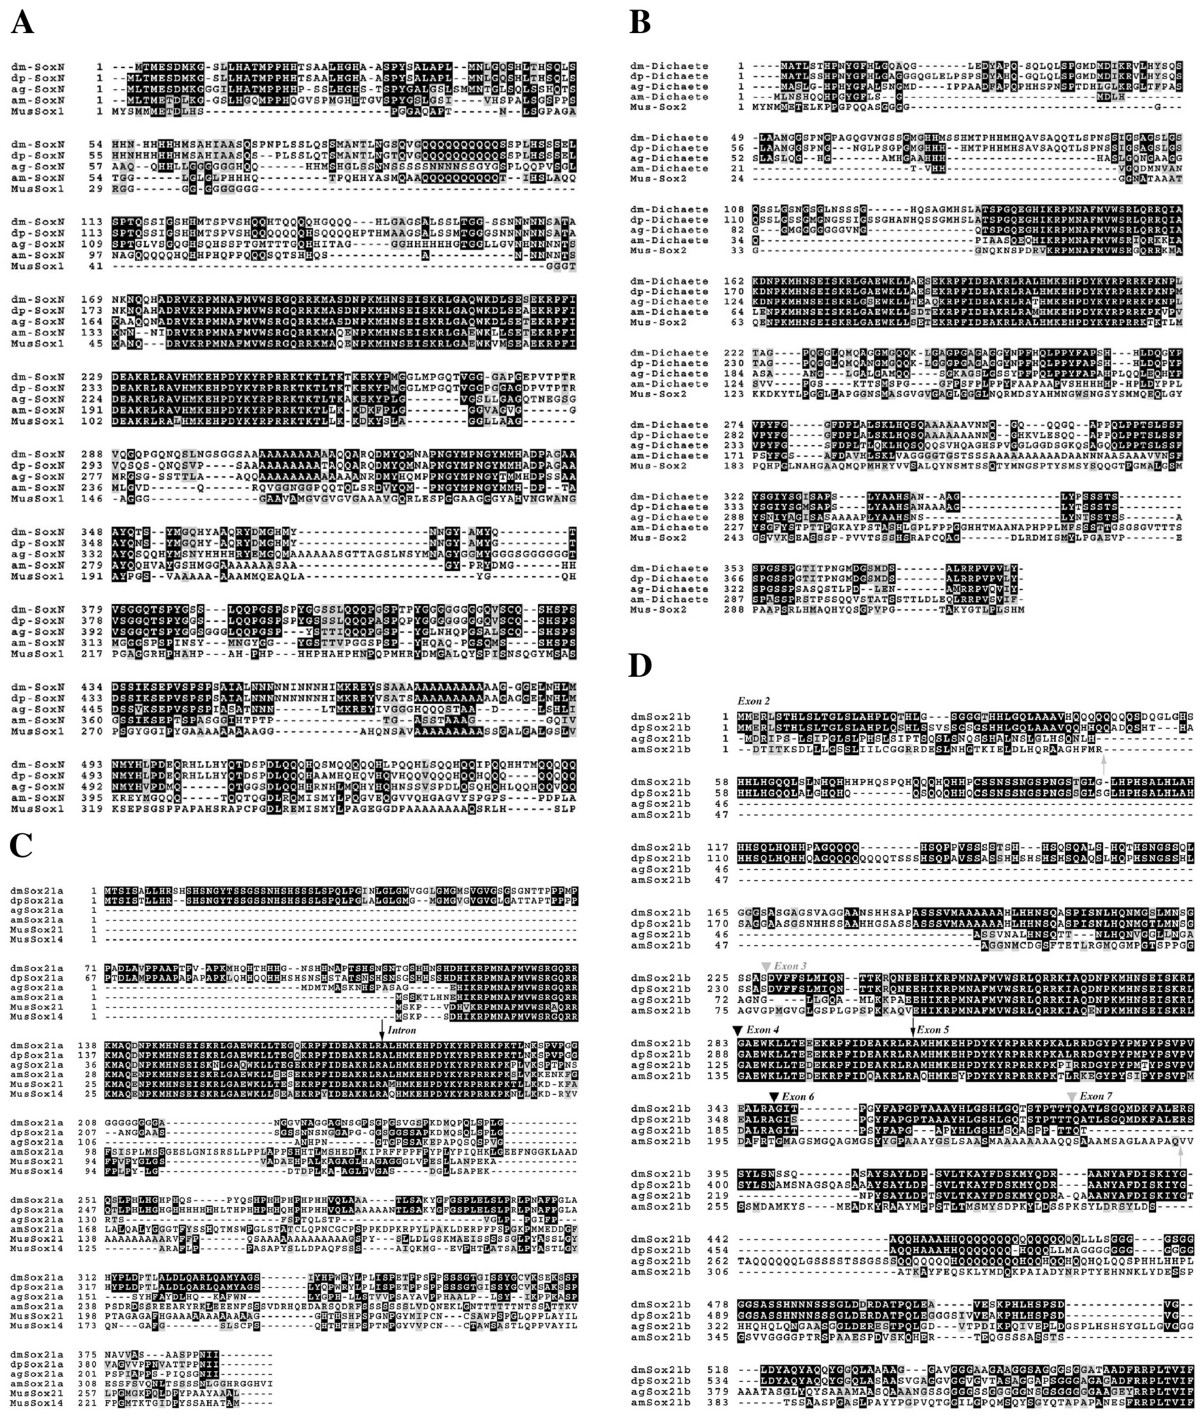 http://static-content.springer.com/image/art%3A10.1186%2F1471-2156-6-26/MediaObjects/12863_2005_Article_232_Fig1_HTML.jpg